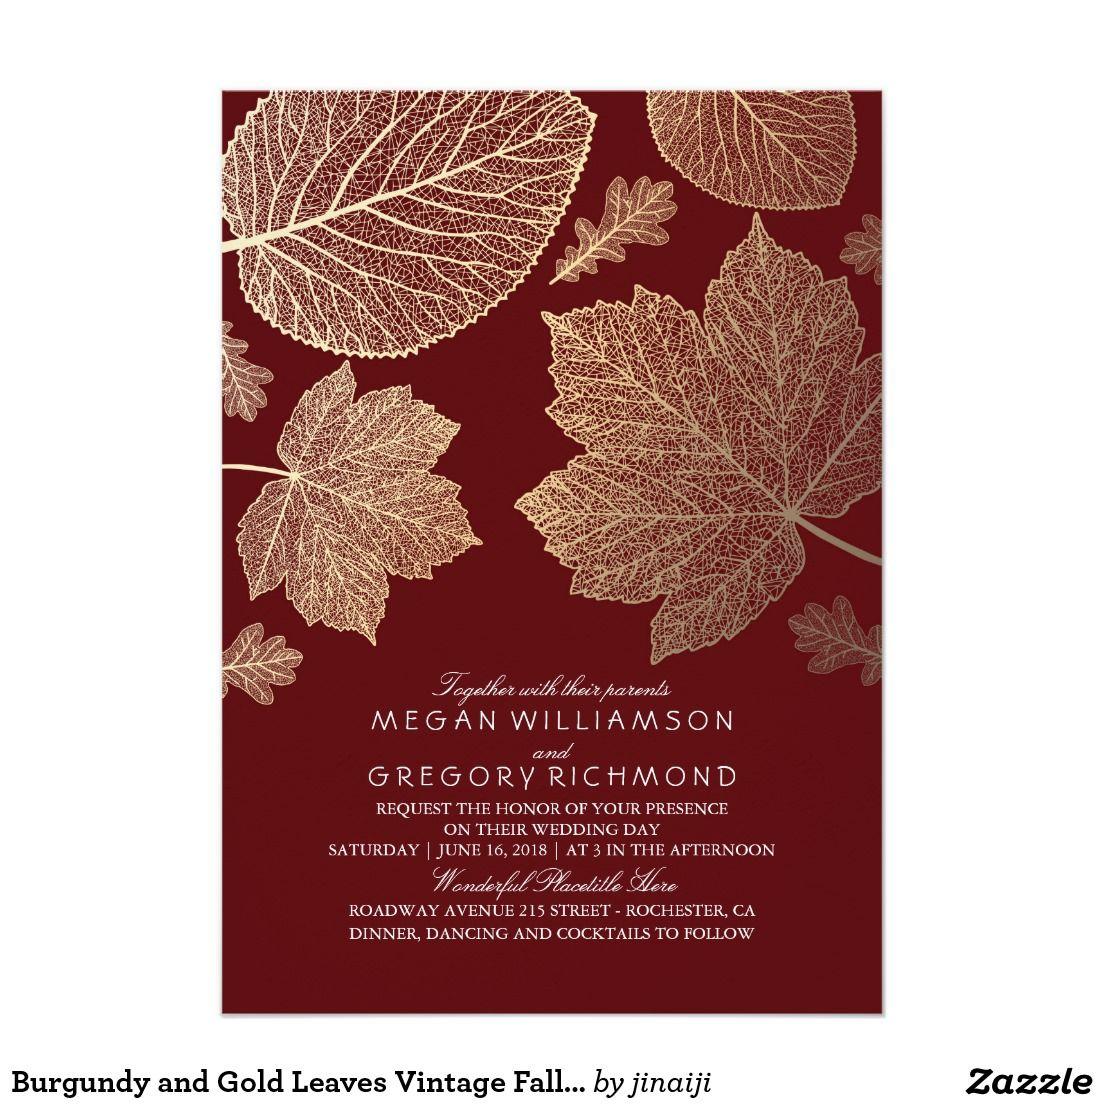 Burgundy and Gold Leaves Vintage Fall Wedding Card | Wedding ...